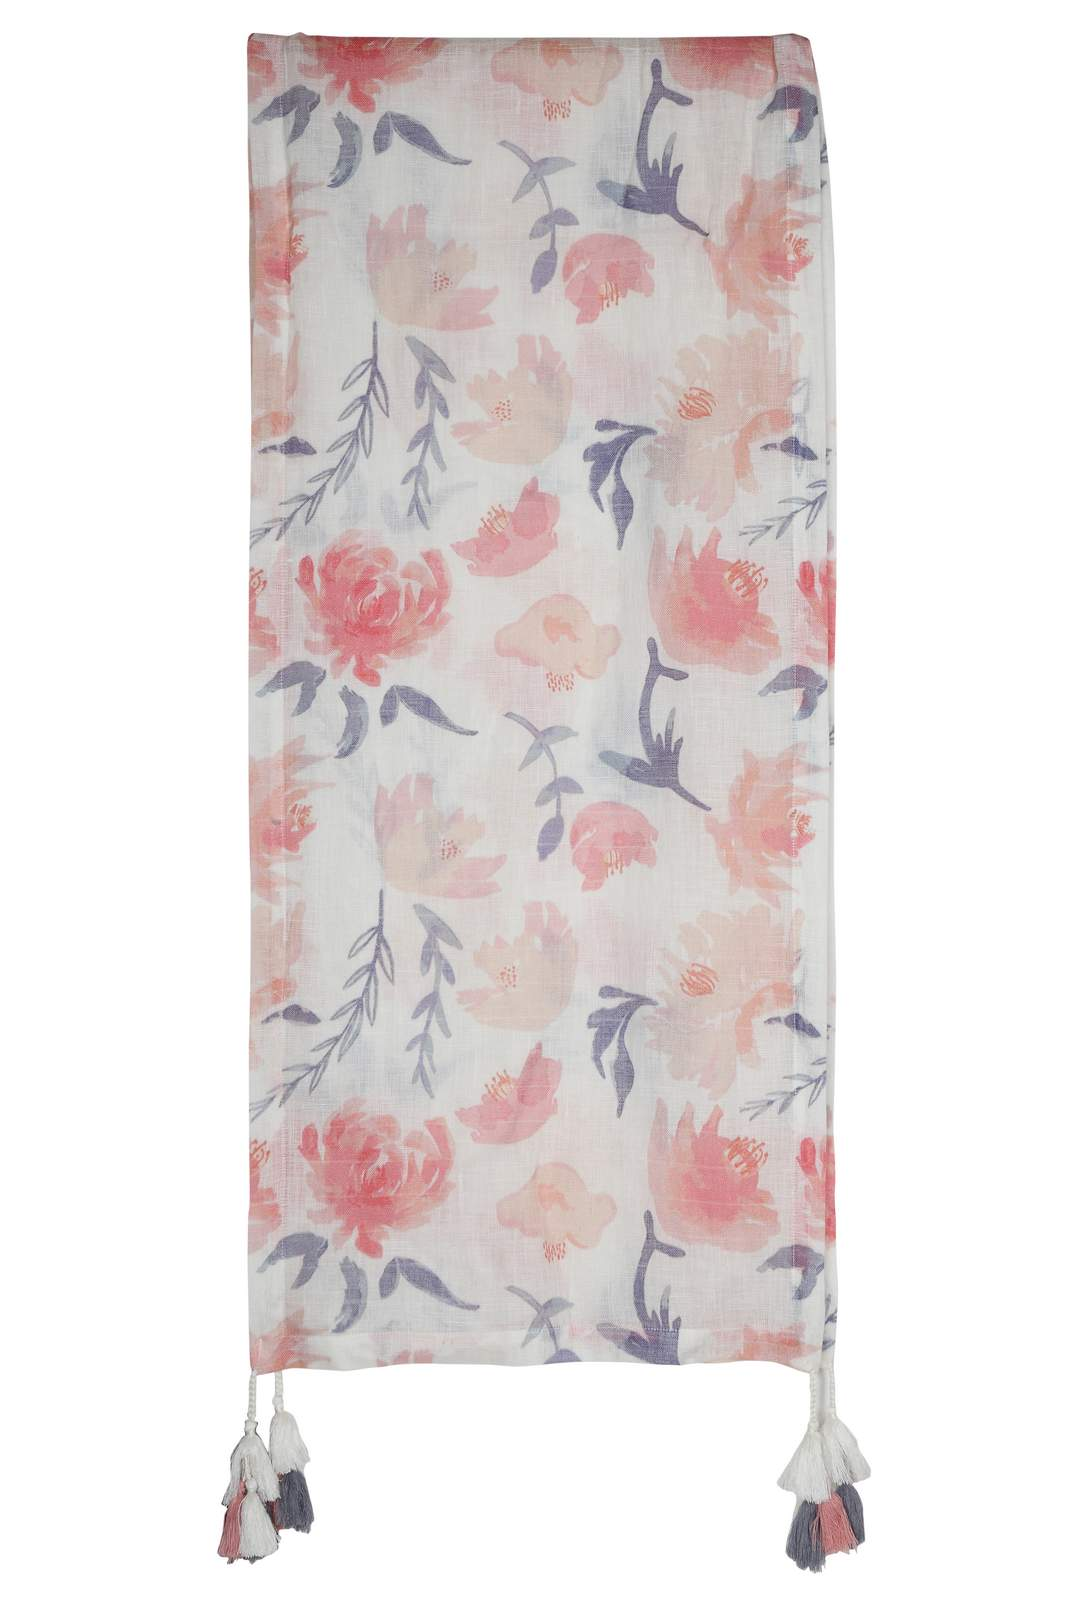 ST 907712 White And Pink Linen Stole One Size - White And Pink (One Size,White and Pink)